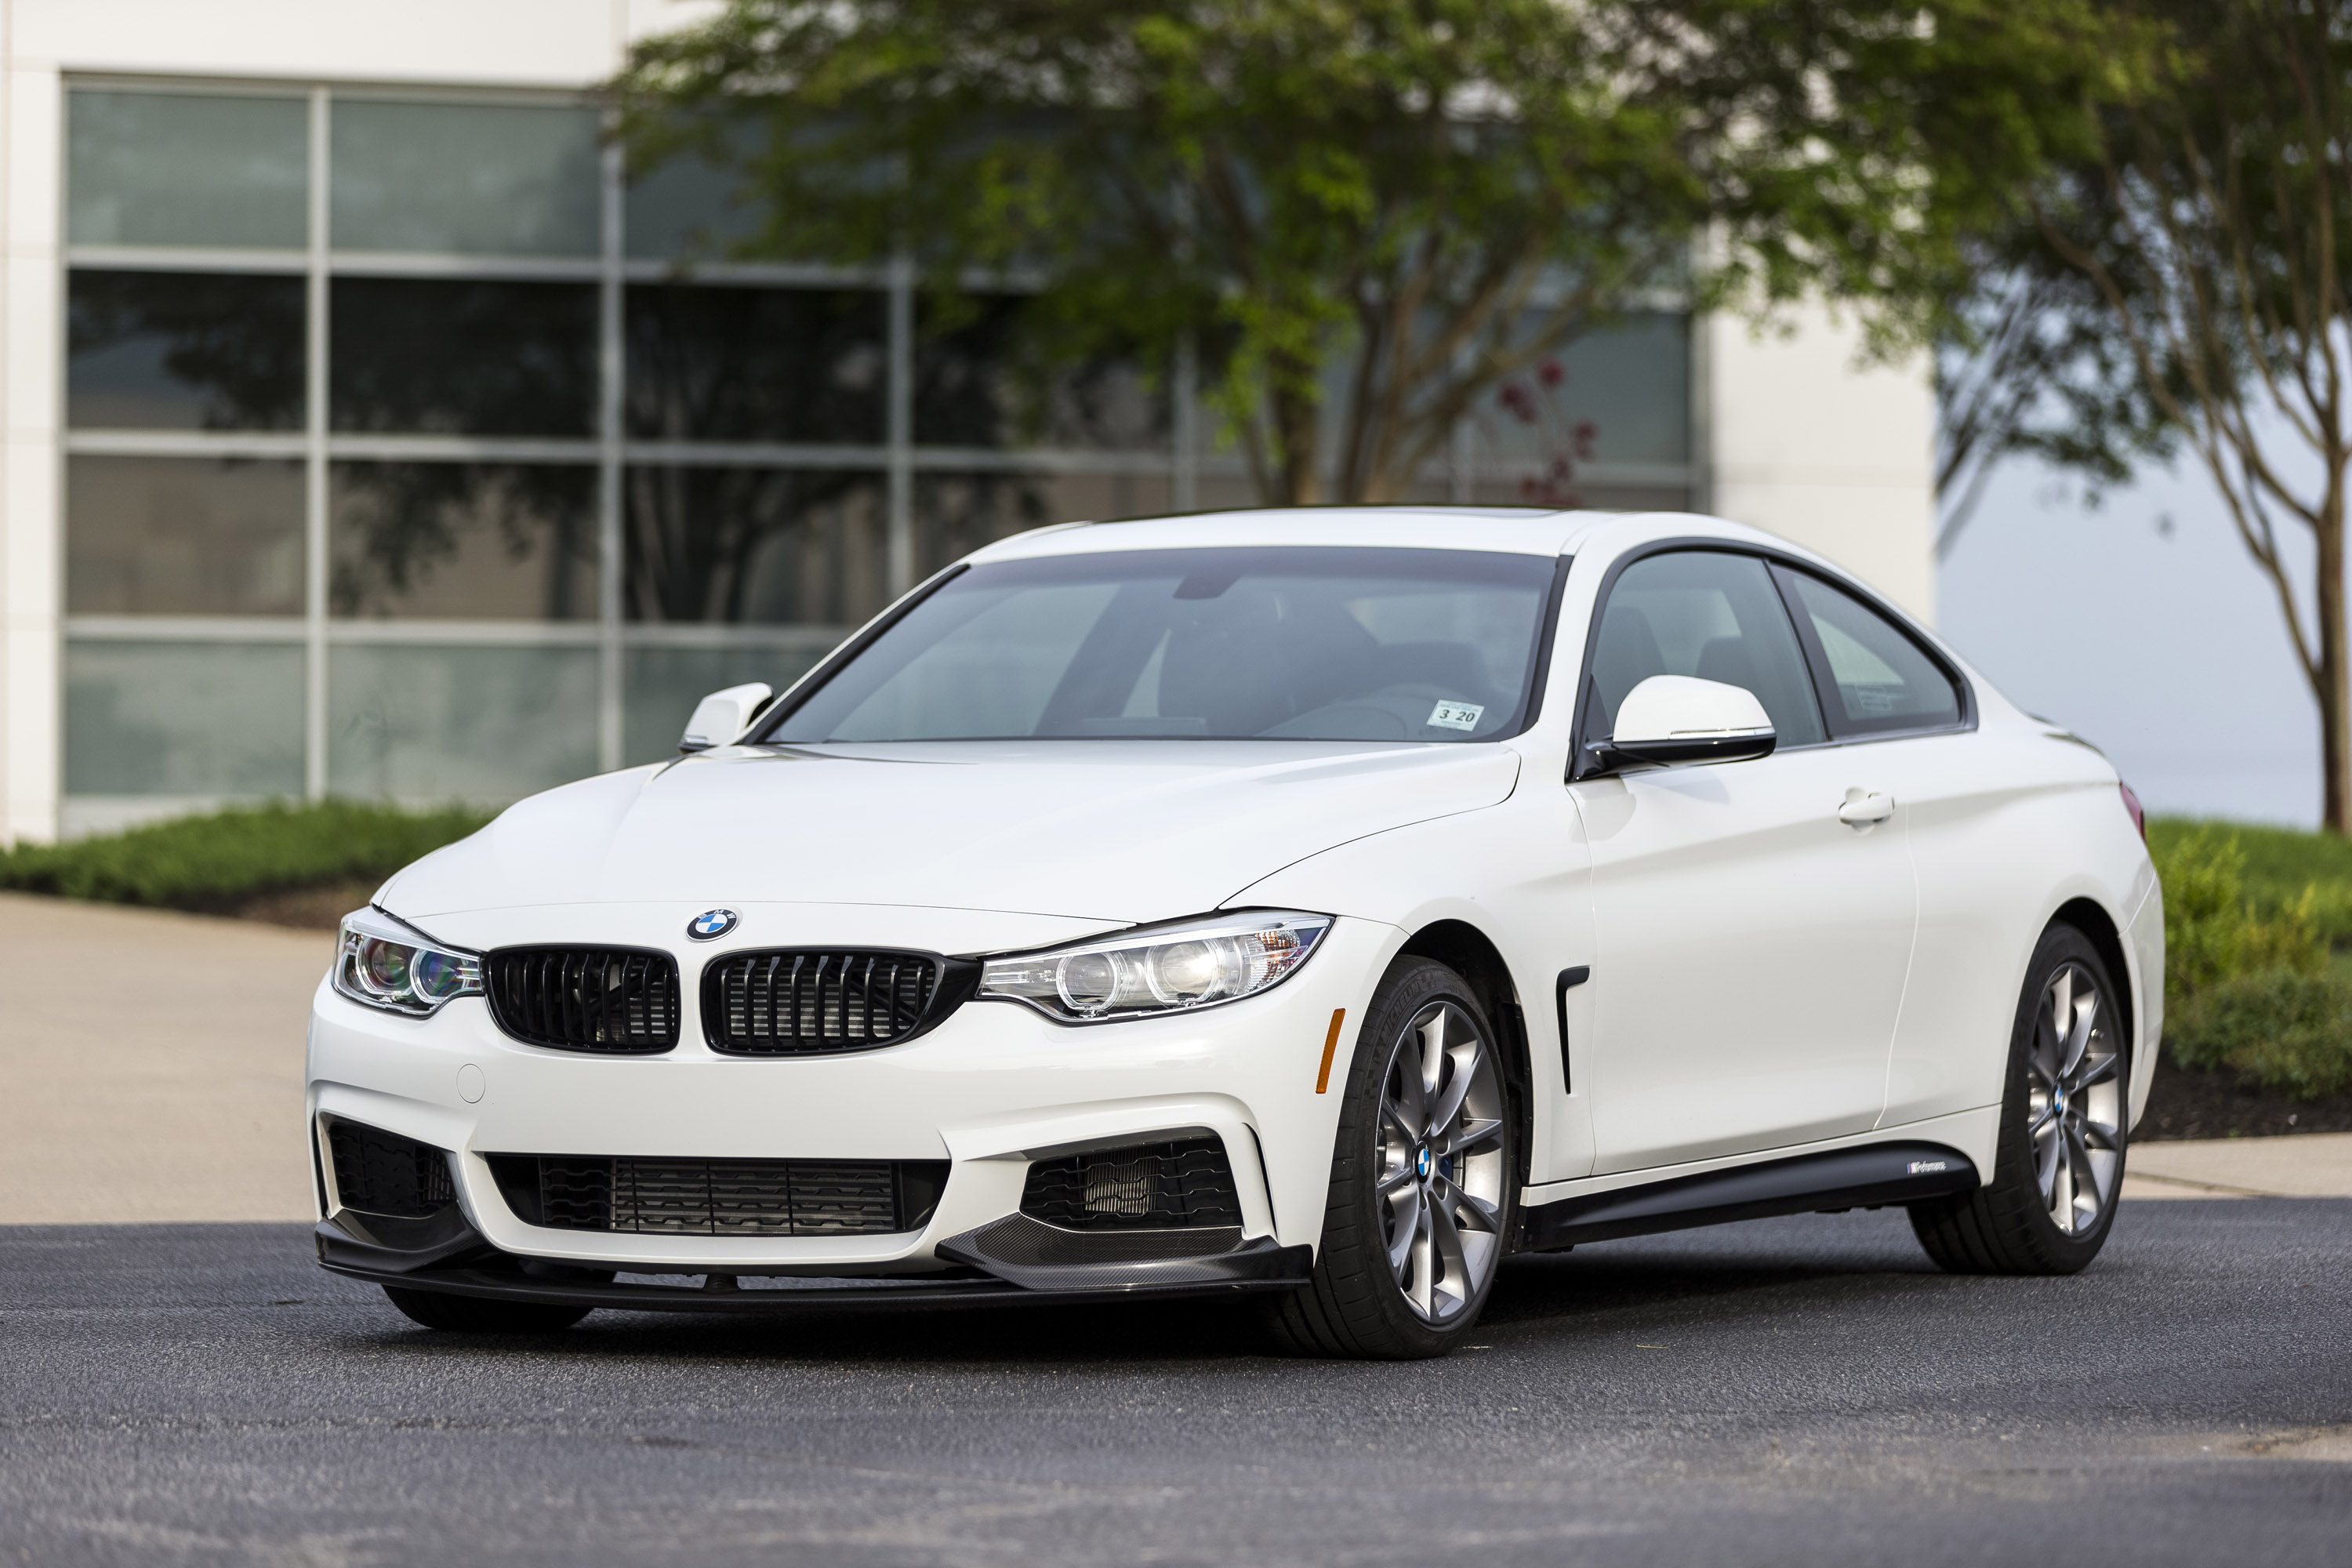 2016 Bmw 435i Zhp Coupe Hd Pictures Carsinvasion Com